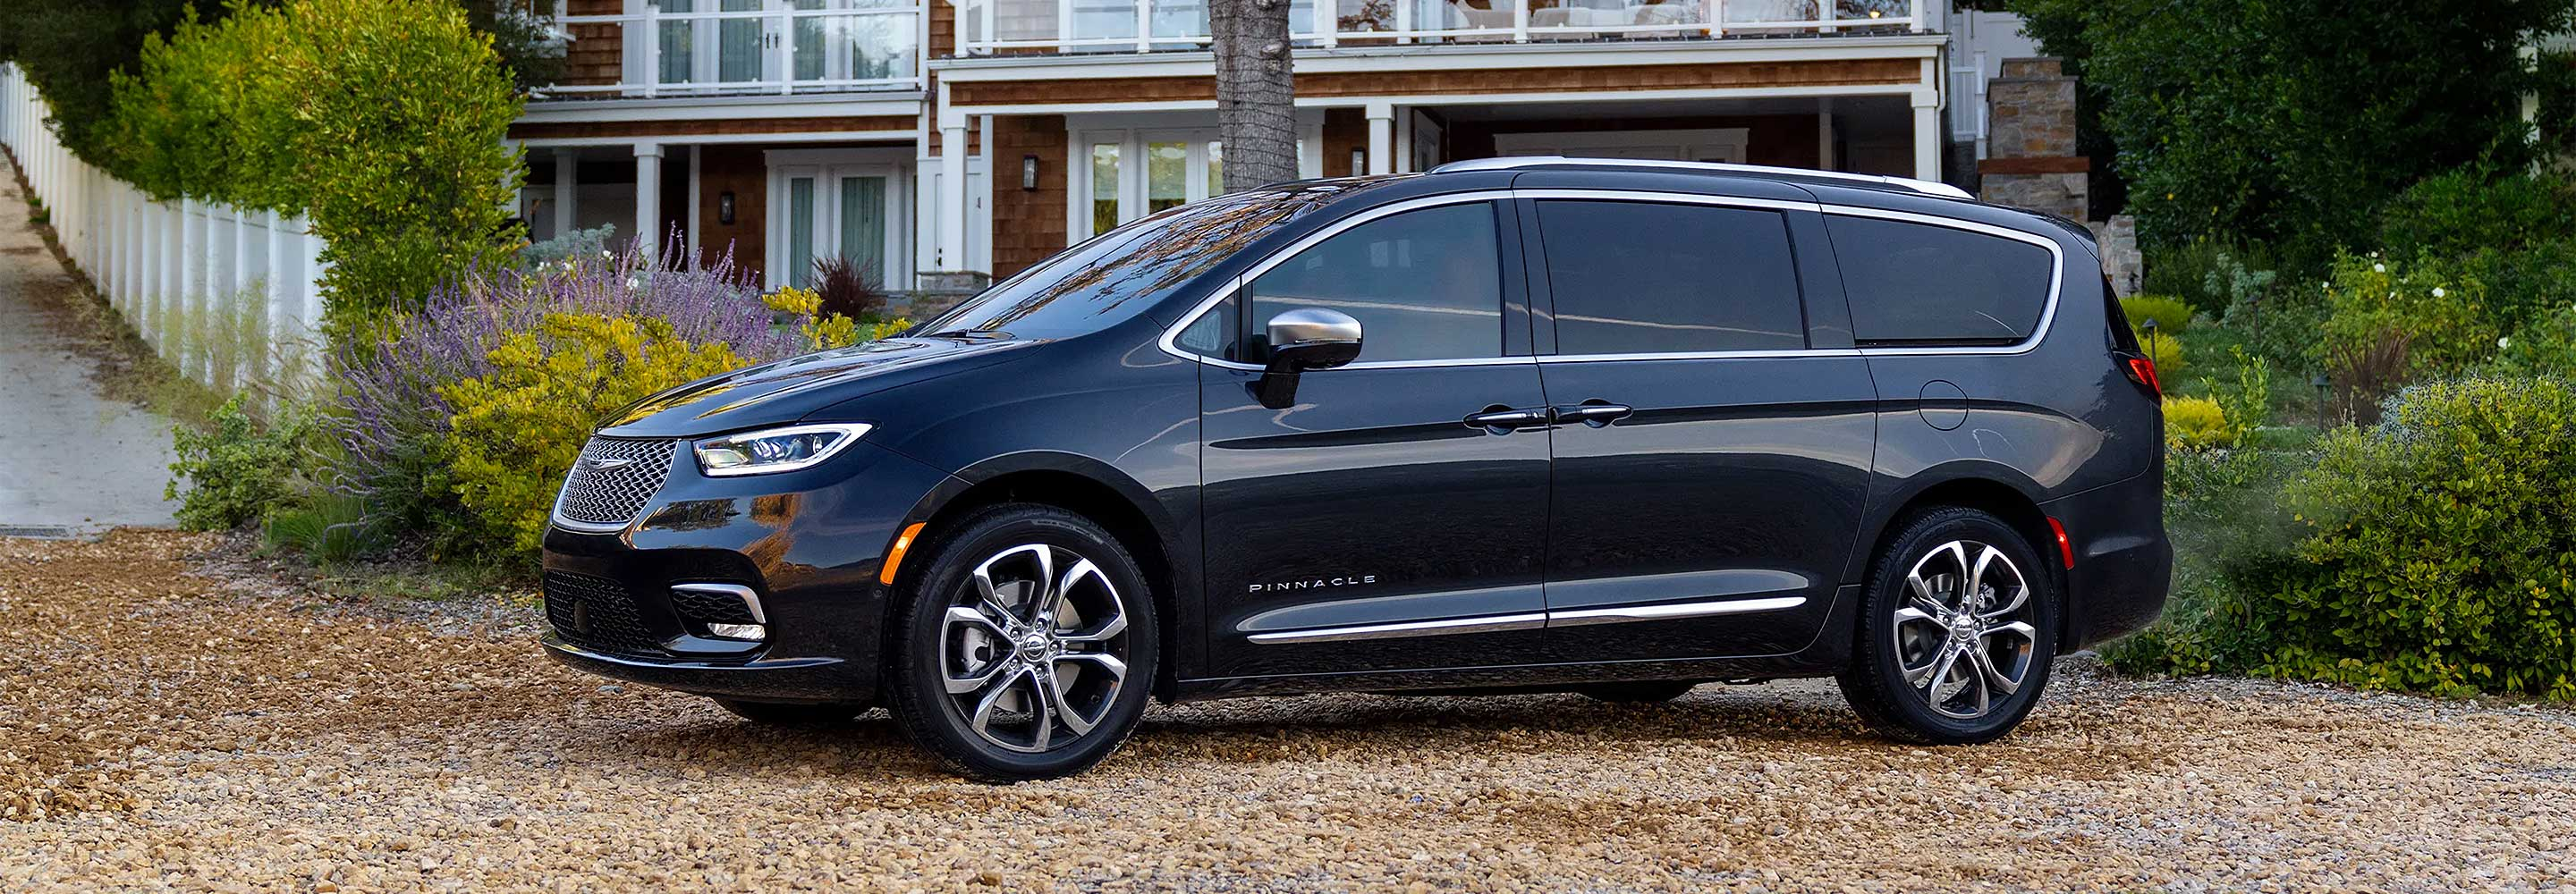 The New Chrysler Pacifica is the Best Minivan to Buy in 2021